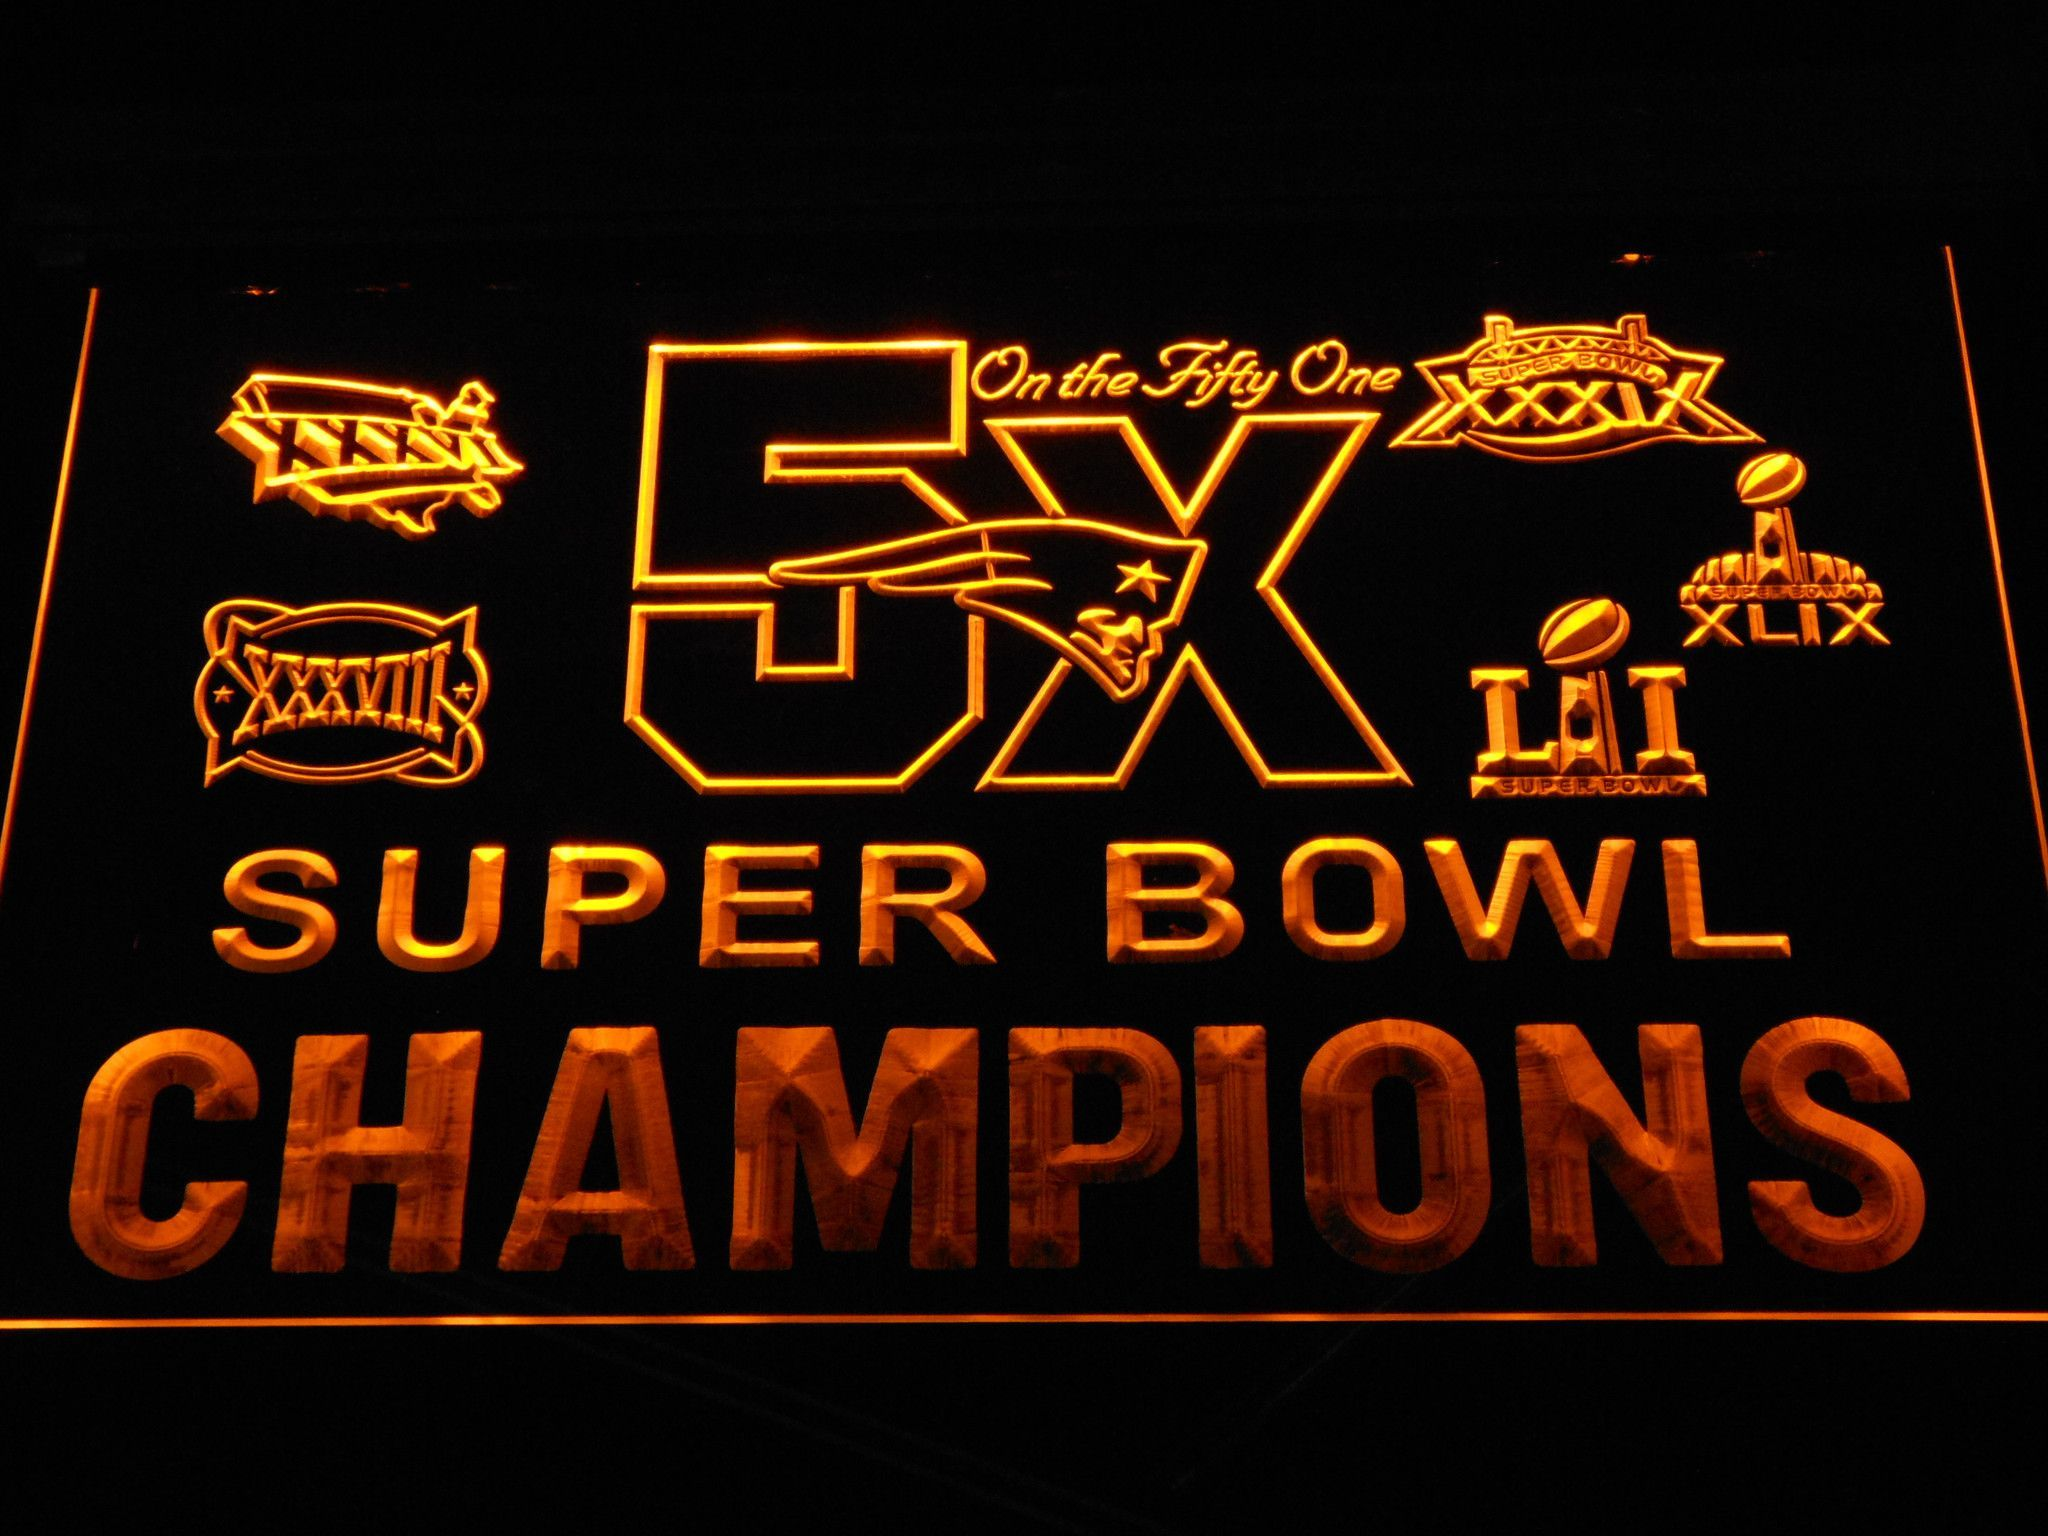 New England Patriots 5X Super Bowl Champions Logos LED Neon Sign